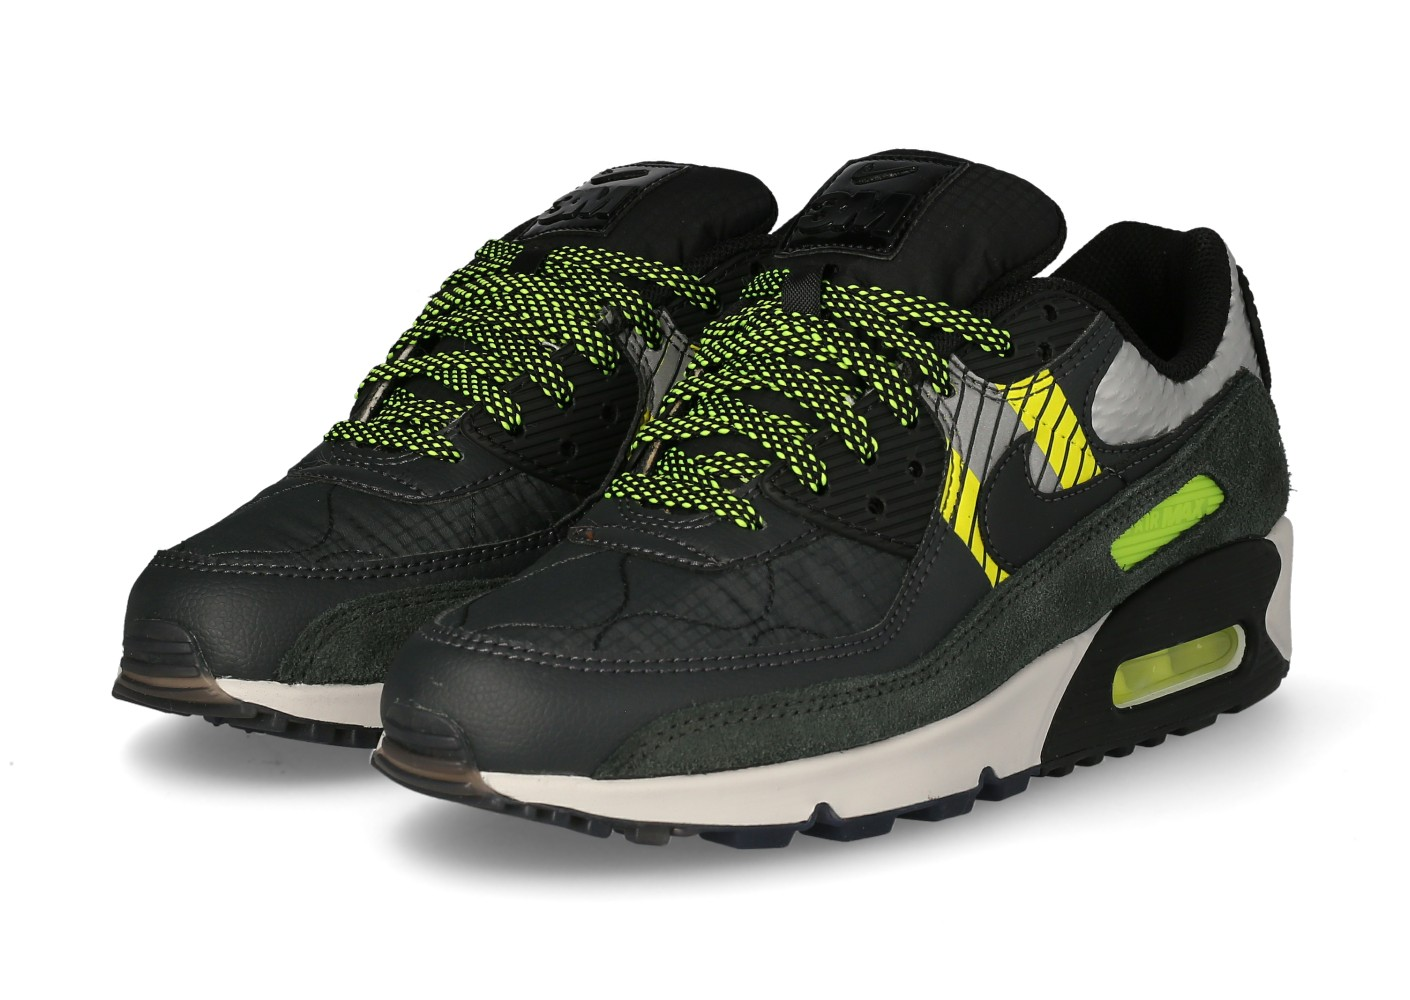 Nike Air Max 90 3M anthracite Volt - Chaussures Baskets homme ...